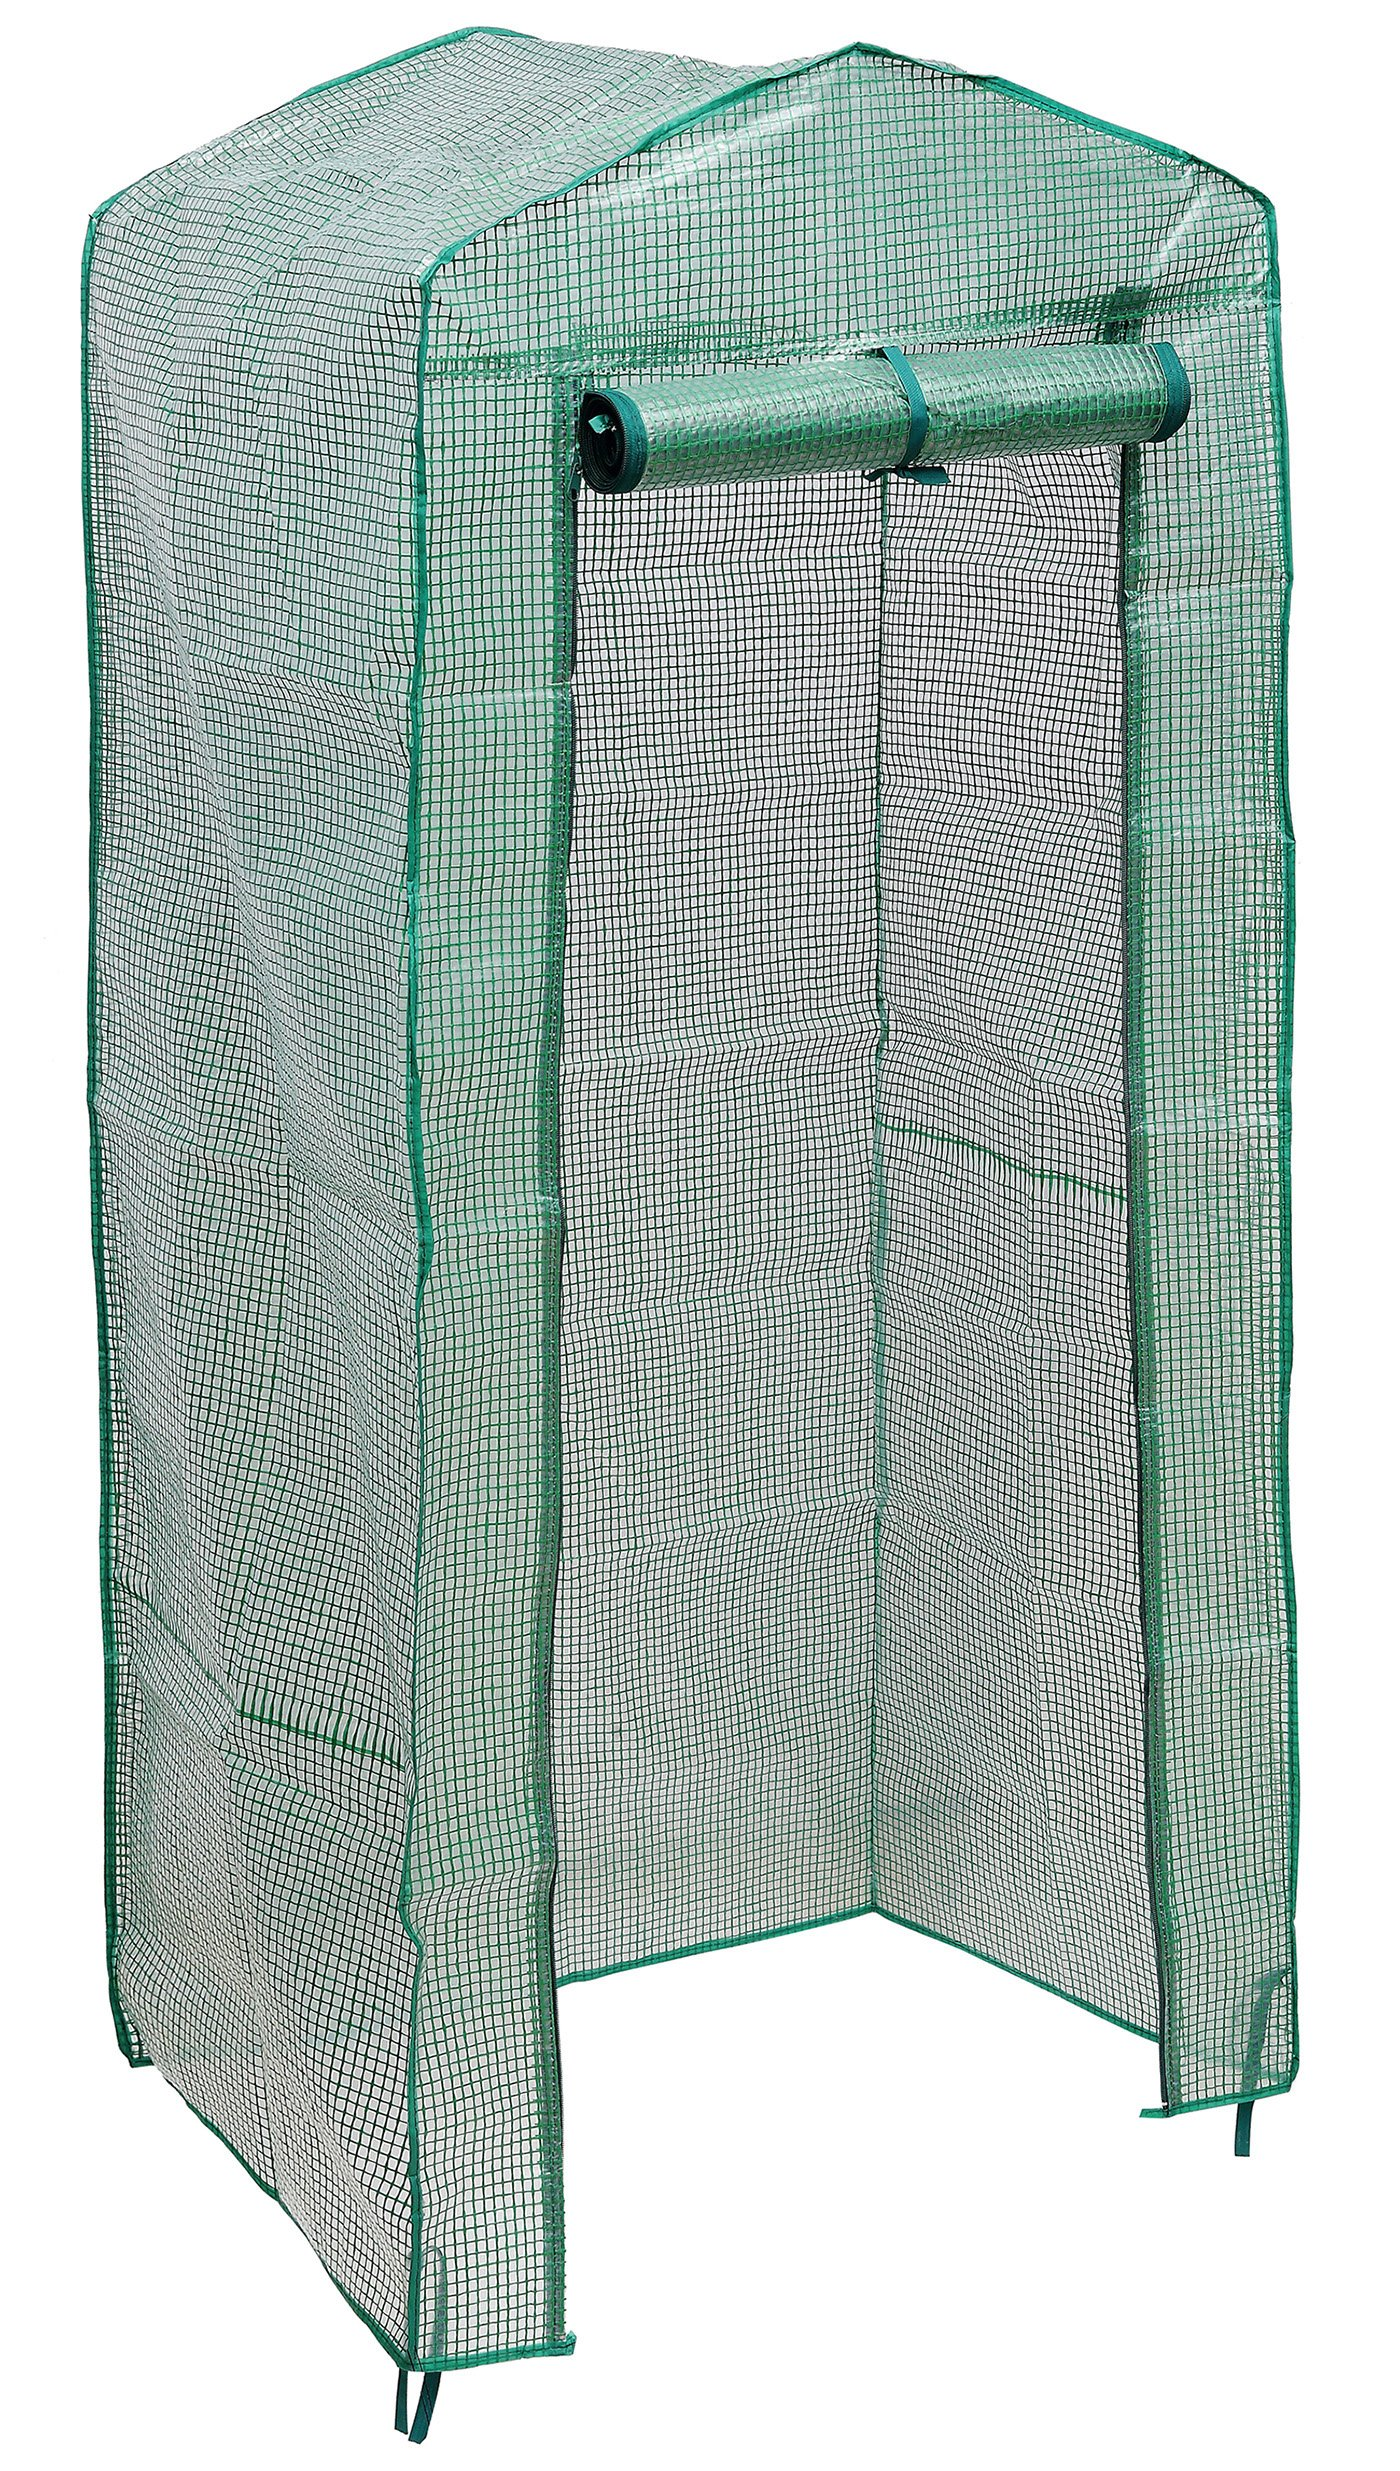 """NKTM 4-Tier Mini Greenhouse Replacement Cover,Outdoor Compact Walk-in Greenhouse 27"""" Long x 18"""" Wide x 63"""" High(FRAM NOT Include)"""